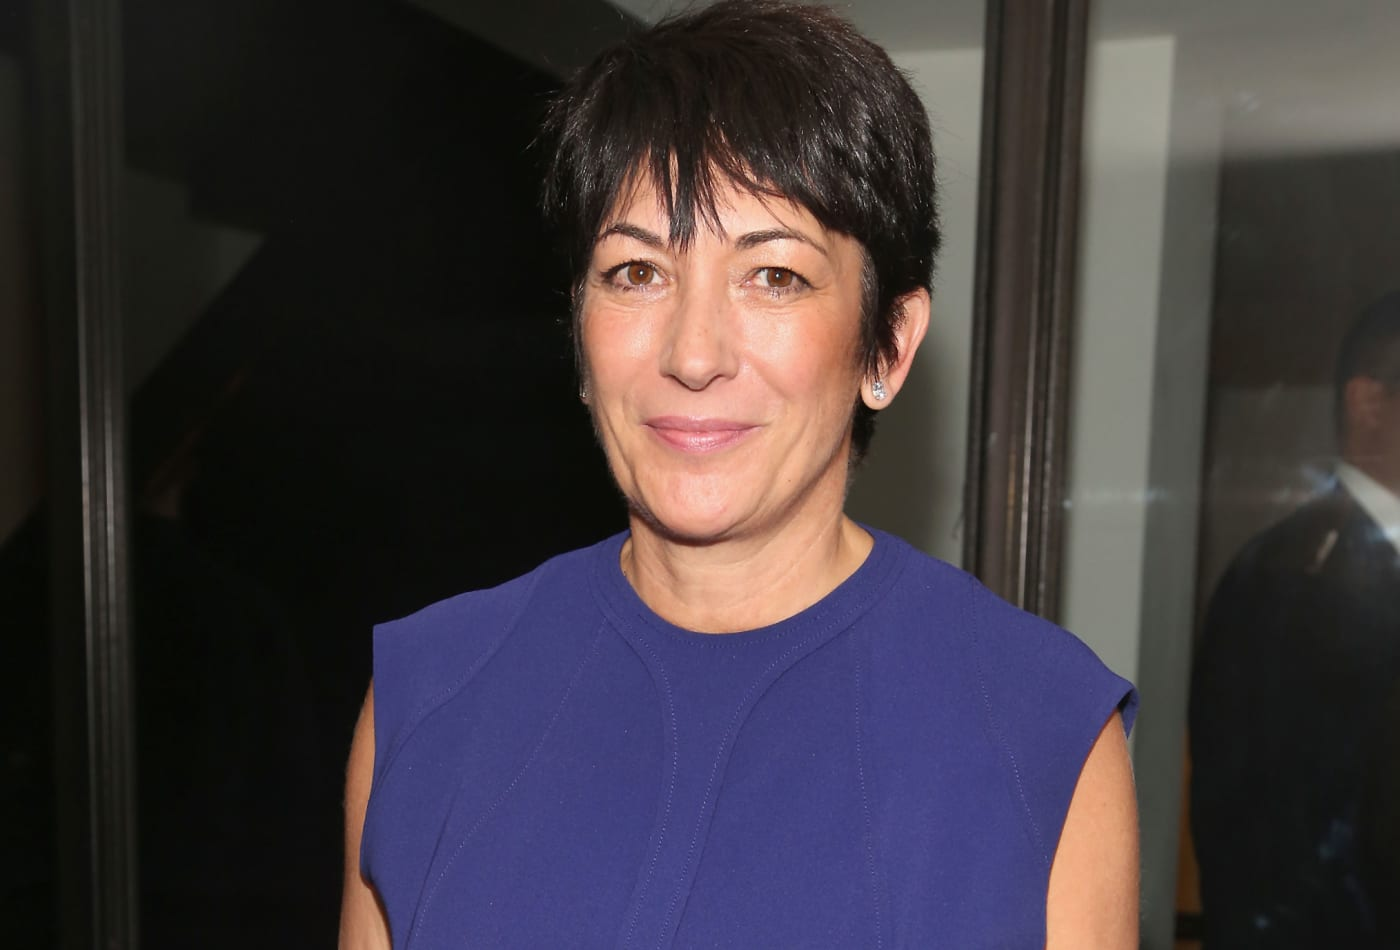 Alleged Jeffrey Epstein sex crime accomplice Ghislaine Maxwell tried to flee from FBI agents before arrest, prosecutors reveal